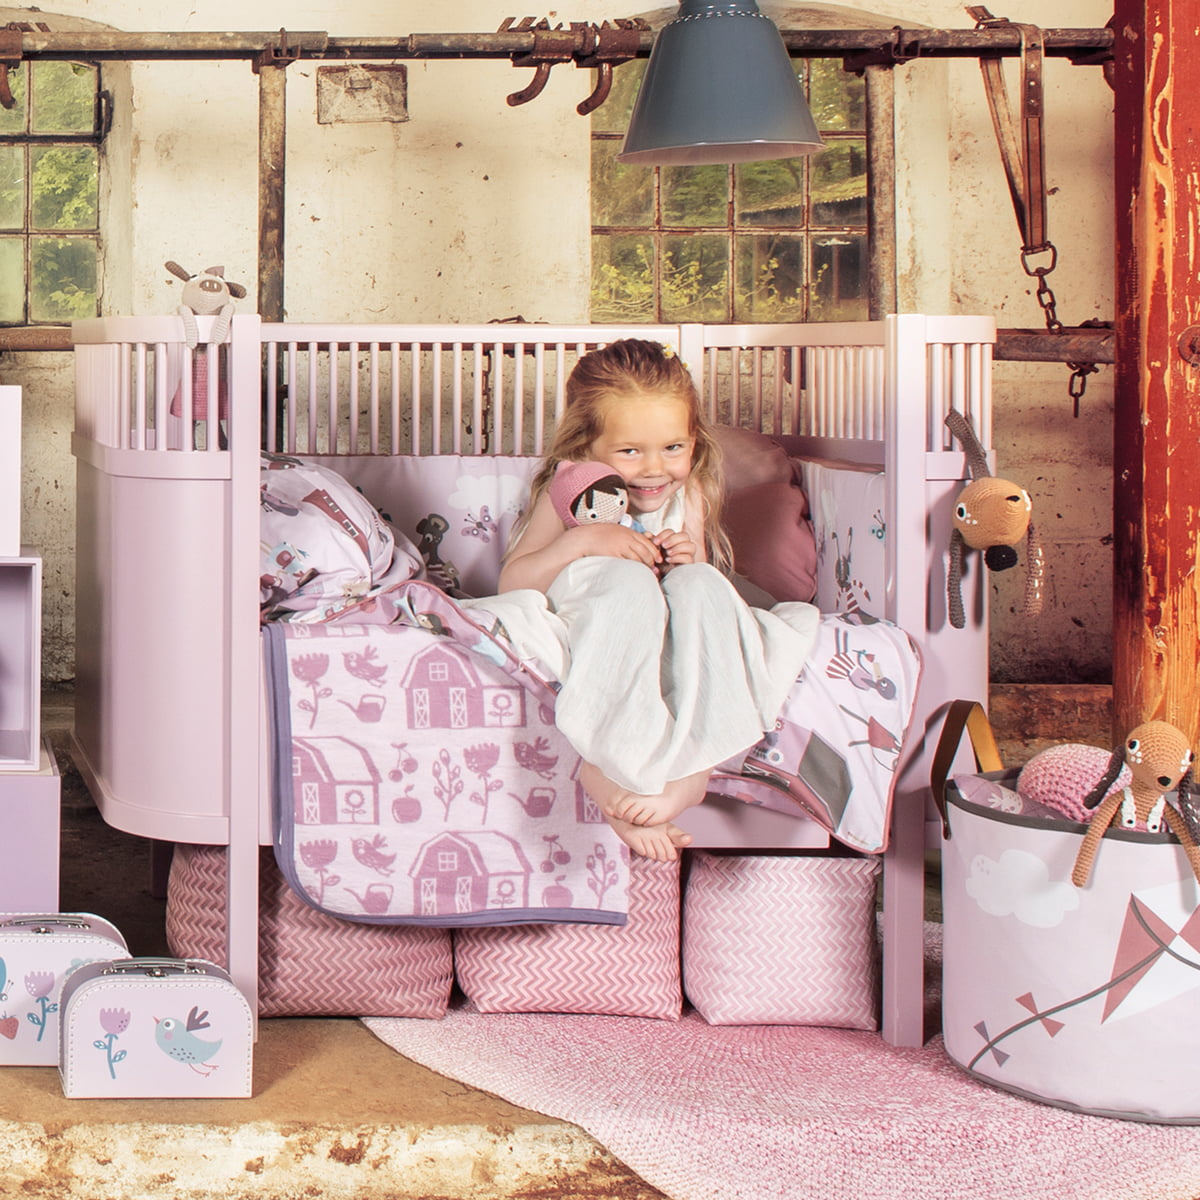 sebra kili babybed junior bed pastel pink sebra kili babybed junior bed pastel pink toddler. Black Bedroom Furniture Sets. Home Design Ideas